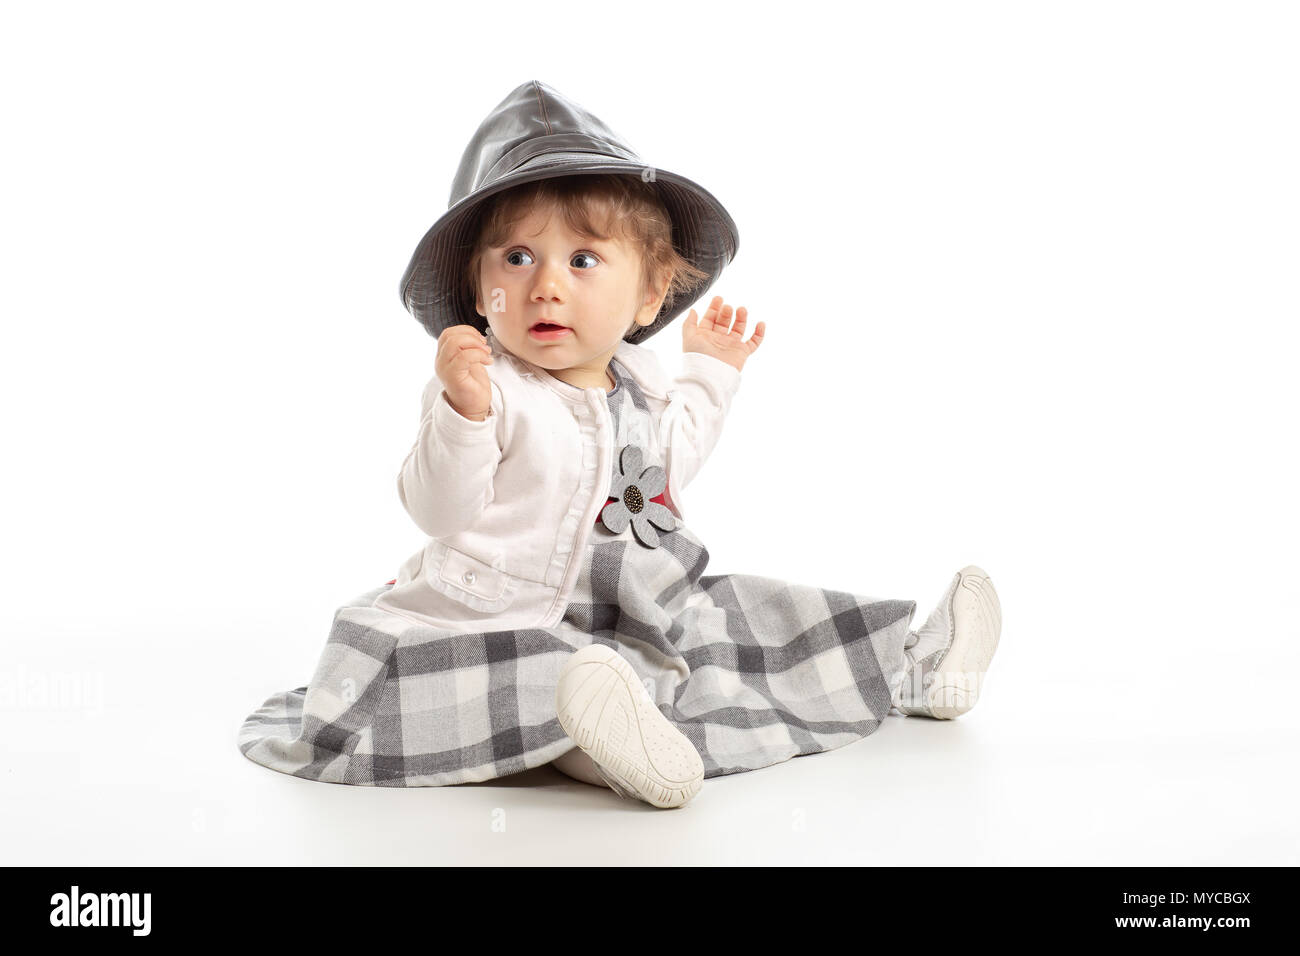 5ecd1a56f660e Elegant Happy baby girl 1 year old sitting on the studio floor with black  leather hat